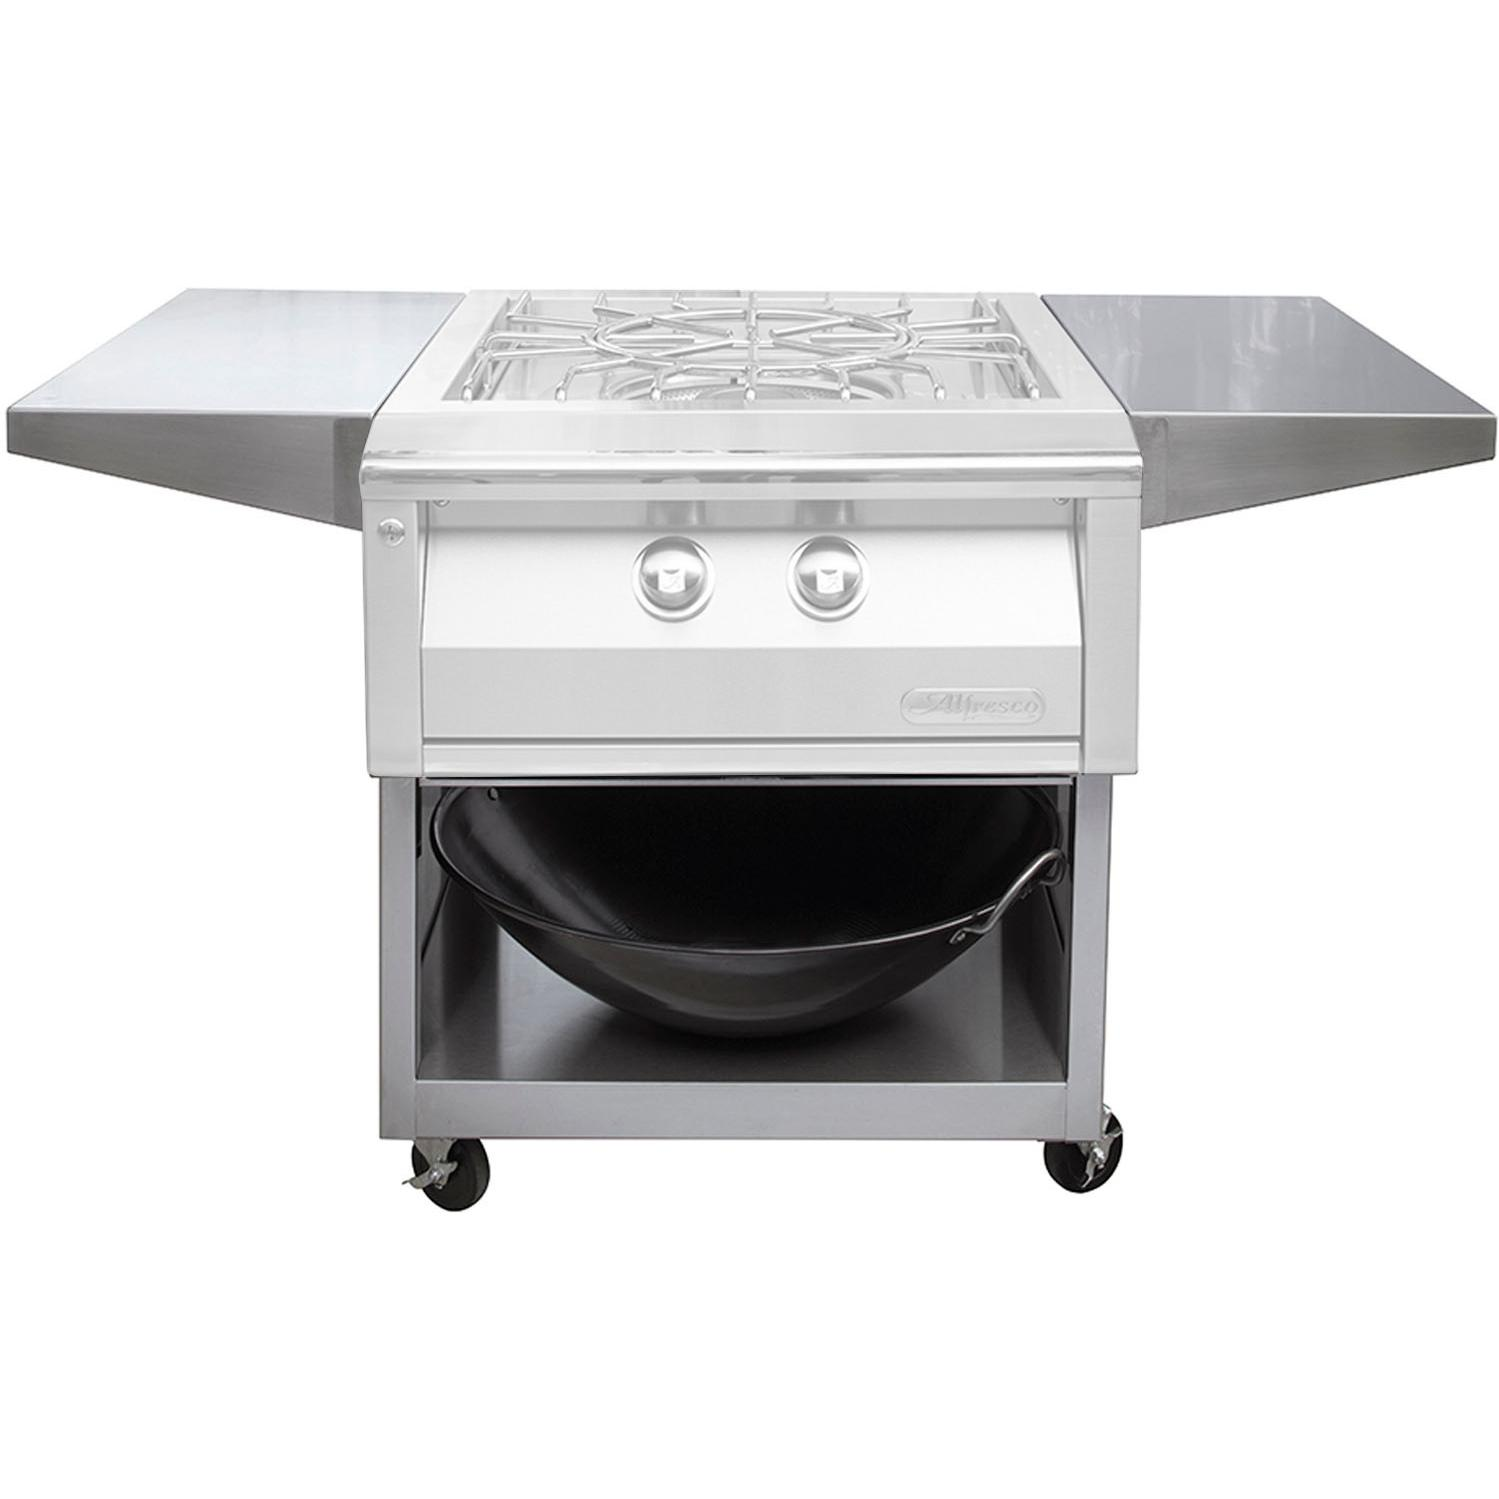 Alfresco 24-Inch Cart For Versa Power Cooker